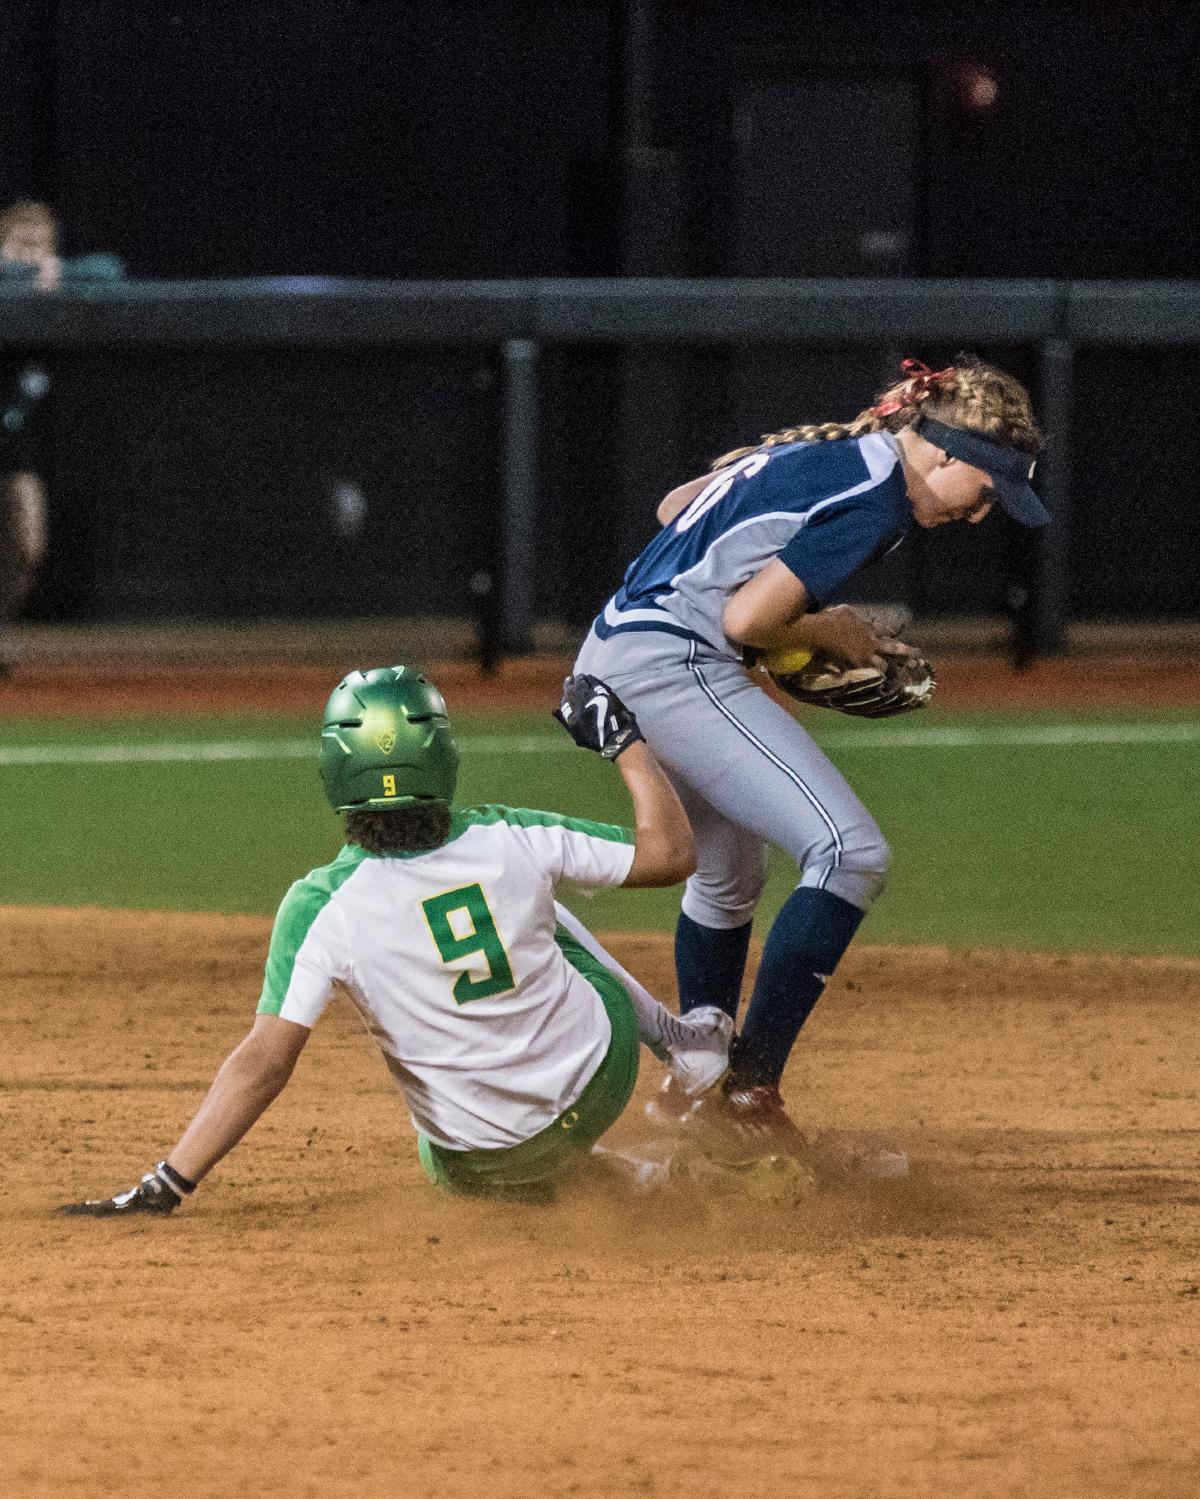 Oregon Ducks Shannon Rhodes (#9) slides into second as second base player Kayla Wedl (#6) attempts to get the out.The No. 3 Oregon Ducks defeated the University of Illinois Chicago Flames 13-0 with the run-rule on Saturday night at Jane Sanders Stadium. The Ducks scored in every inning and then scored nine runs at the bottom of the fourth. The Oregon Ducks are now 22-0 in NCAA regional games. The Oregon Ducks play Wisconsin next on Saturday, May 20 at 2pm at Jane Sanders Stadium. Photo by Cheyenne Thorpe, Oregon News Lab